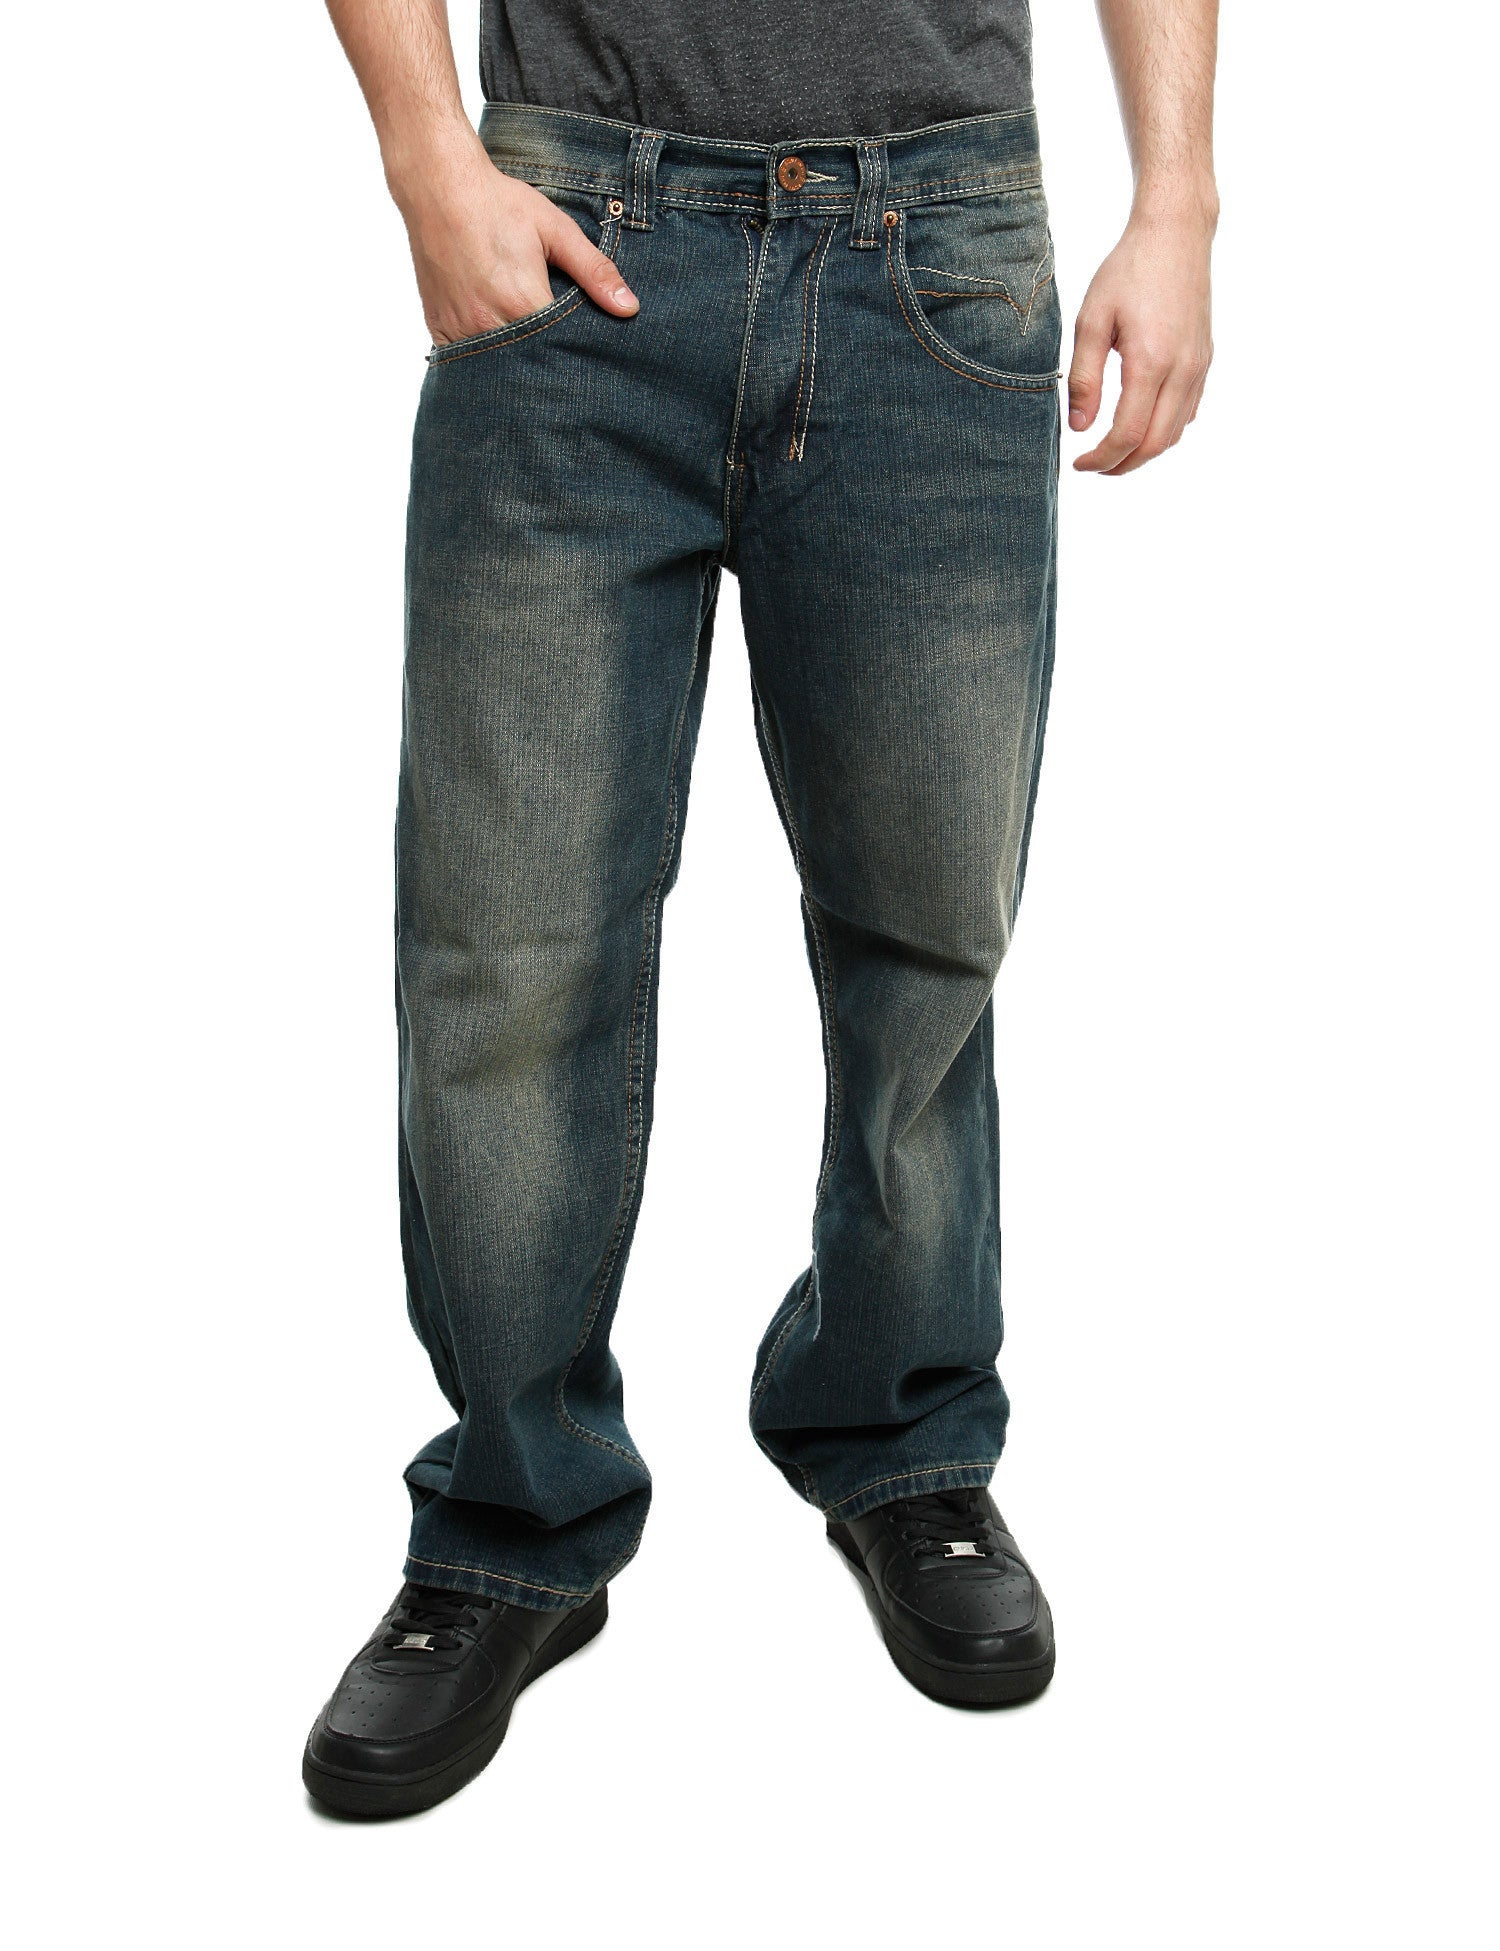 Royal Blue Jeans 8207 Rust Blue